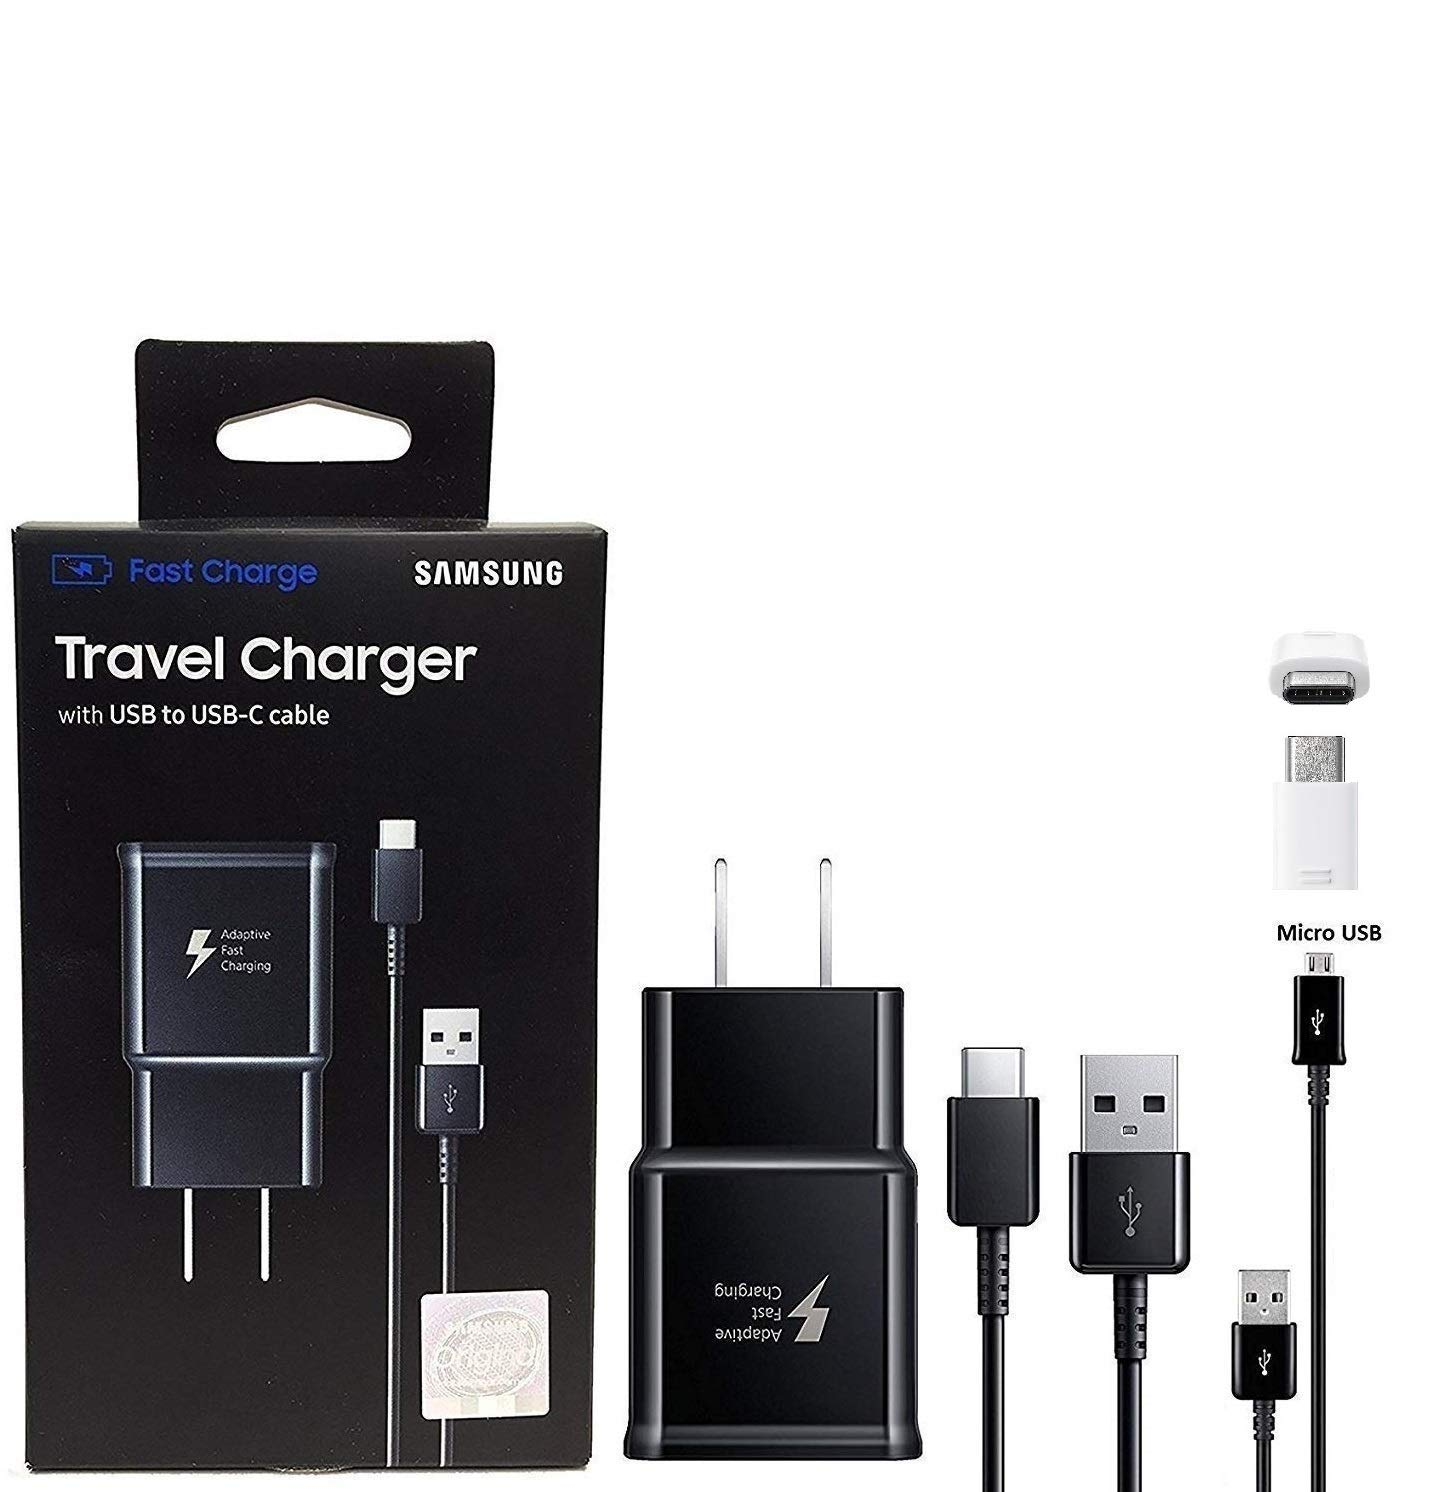 Offical OEM Samsung Adaptive Fast Charging Charger - for Samsung Galaxy S8/S8 plus/Note8 and Car Charger (US Retail Packing Kit)